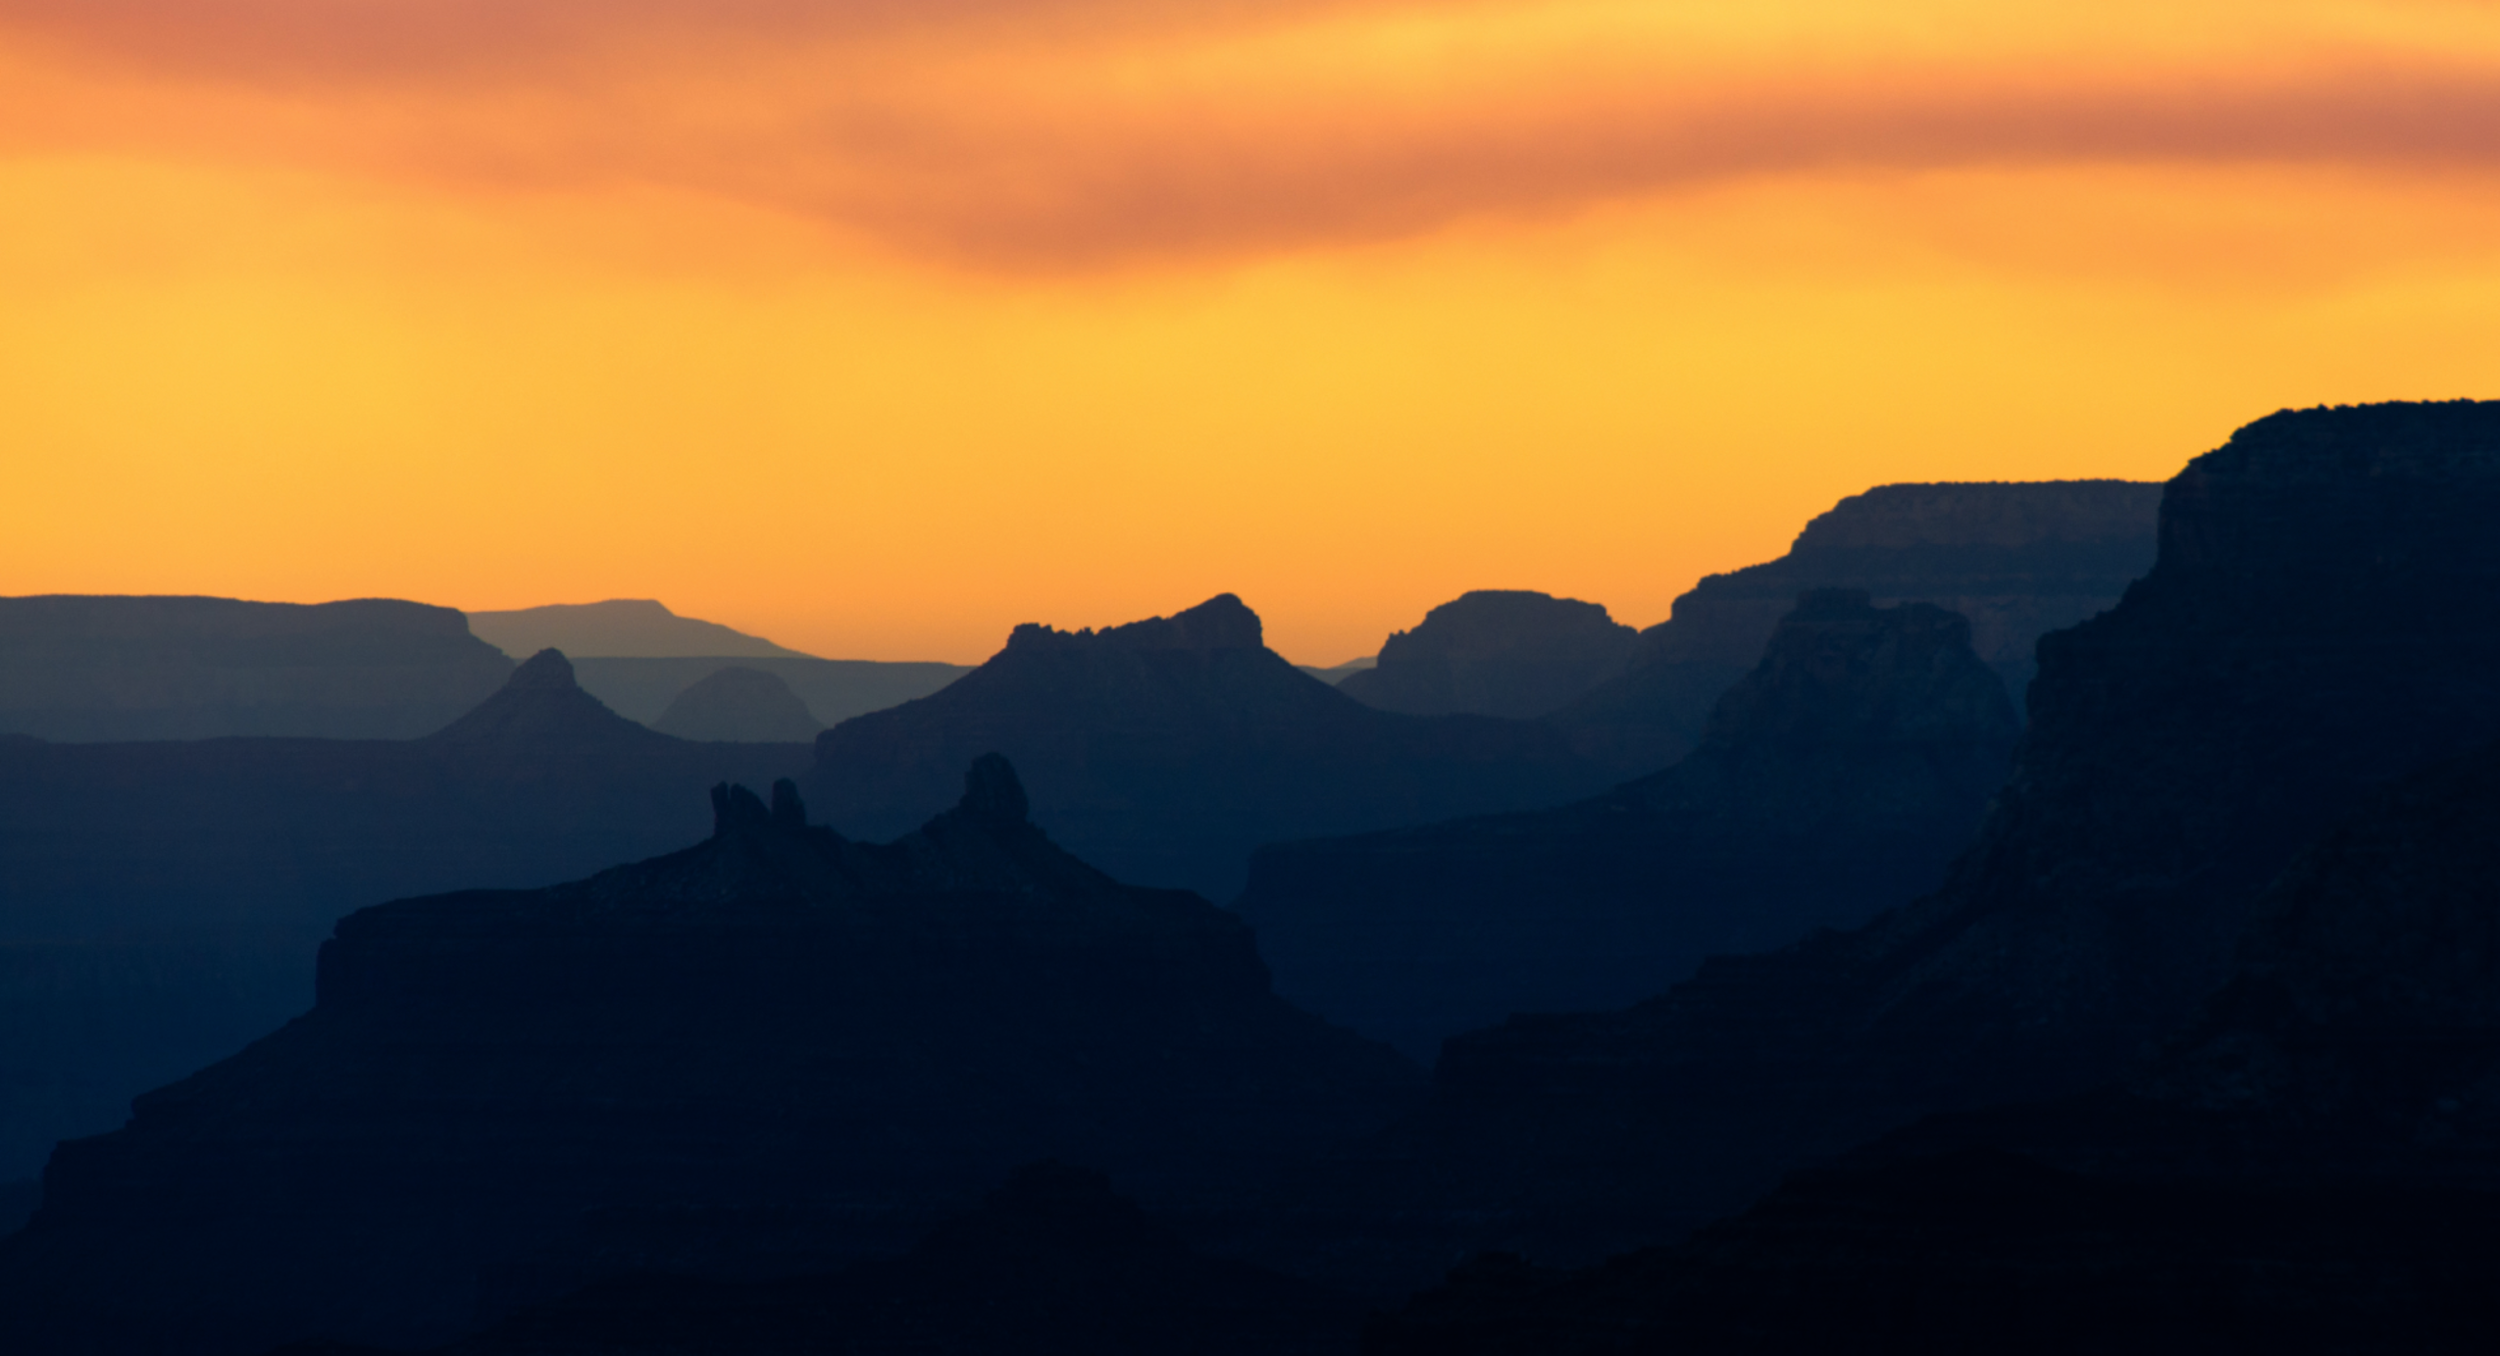 IV. Sunset   Animal calls herald the close of the day, as the sun slowly sinks behind the formations of the canyon. Finally the stars emerge.